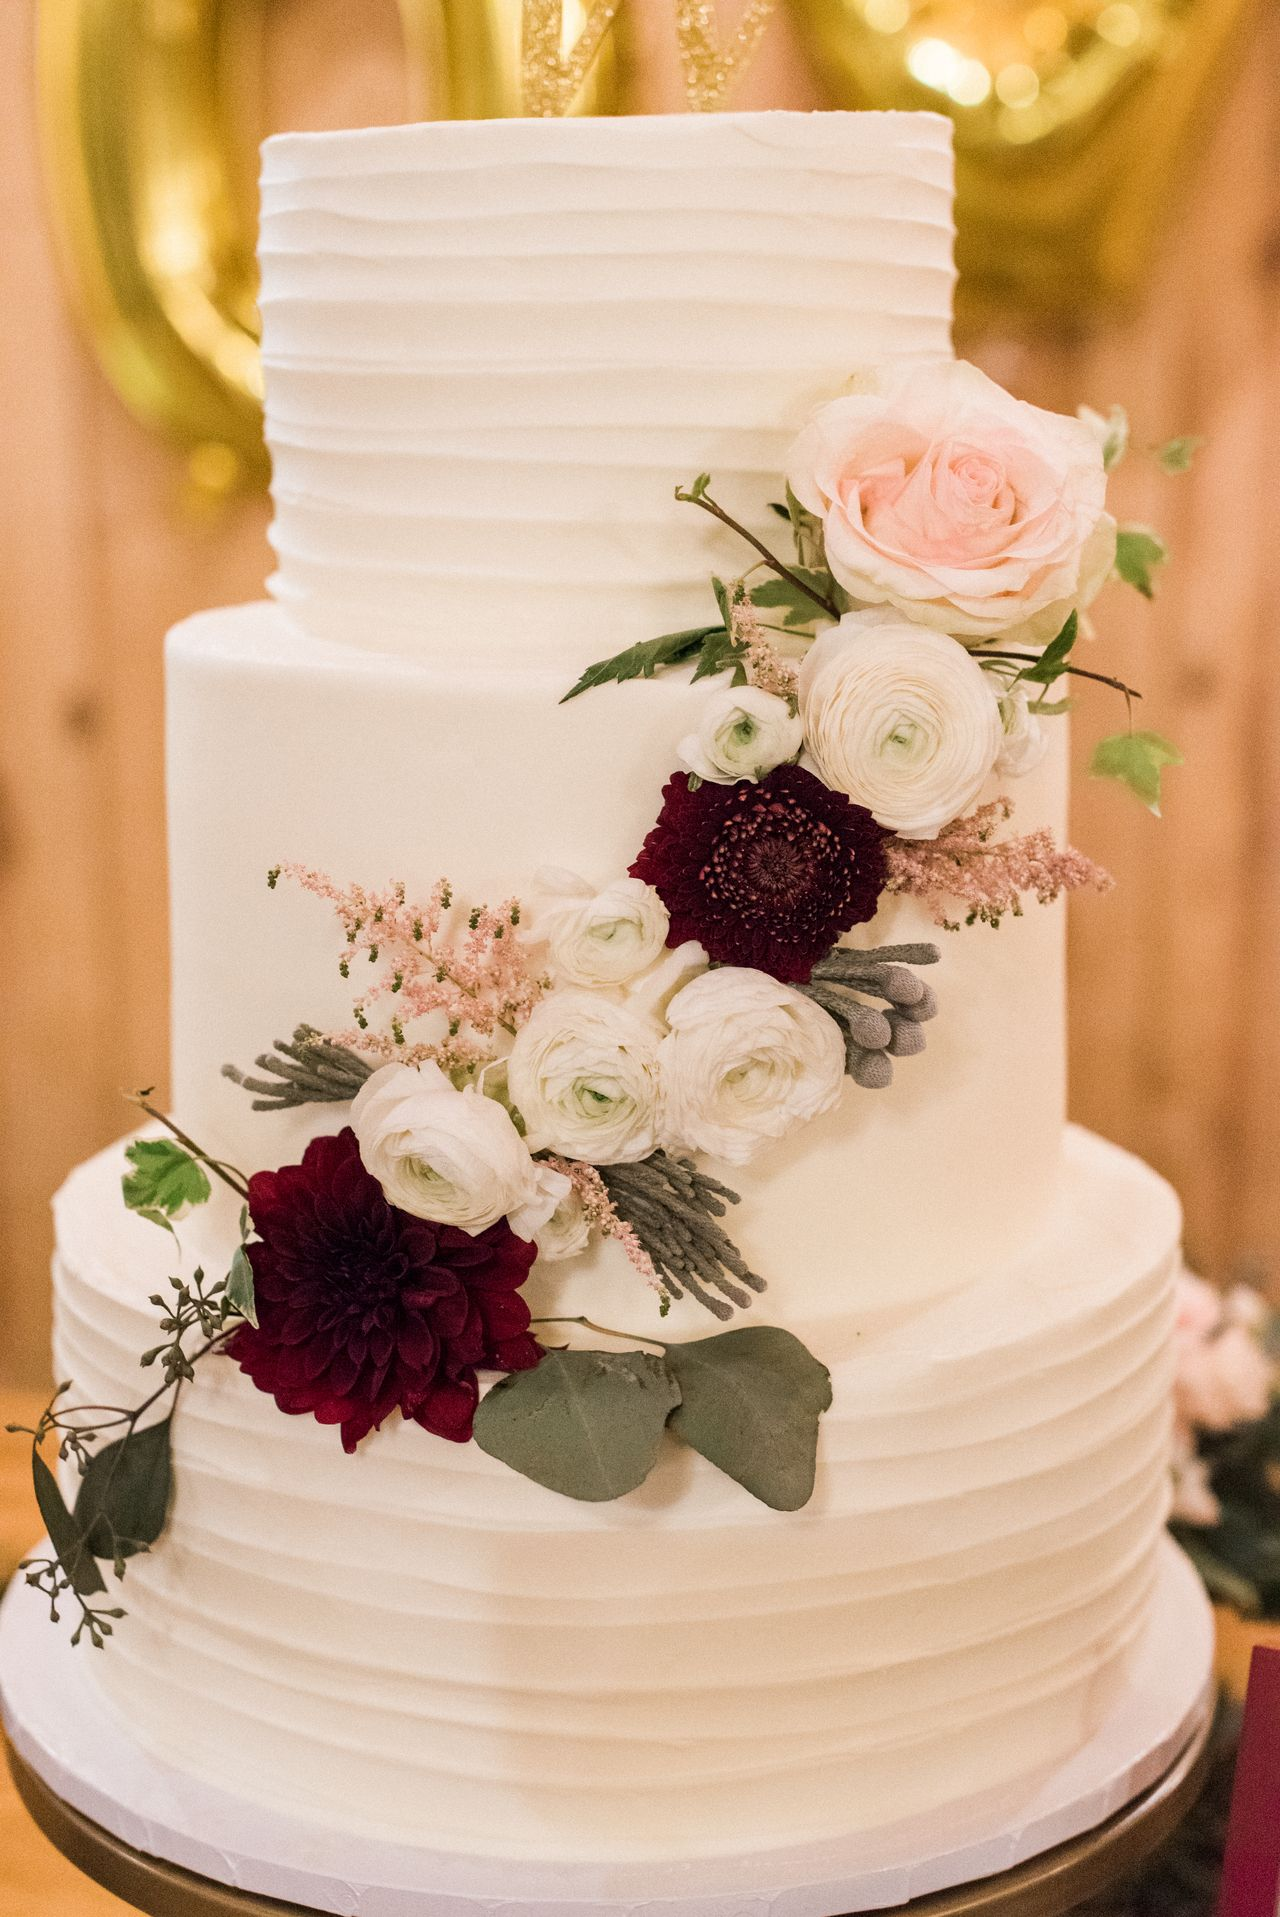 THE SPRINGS in McKinney Floral wedding cakes, Blush